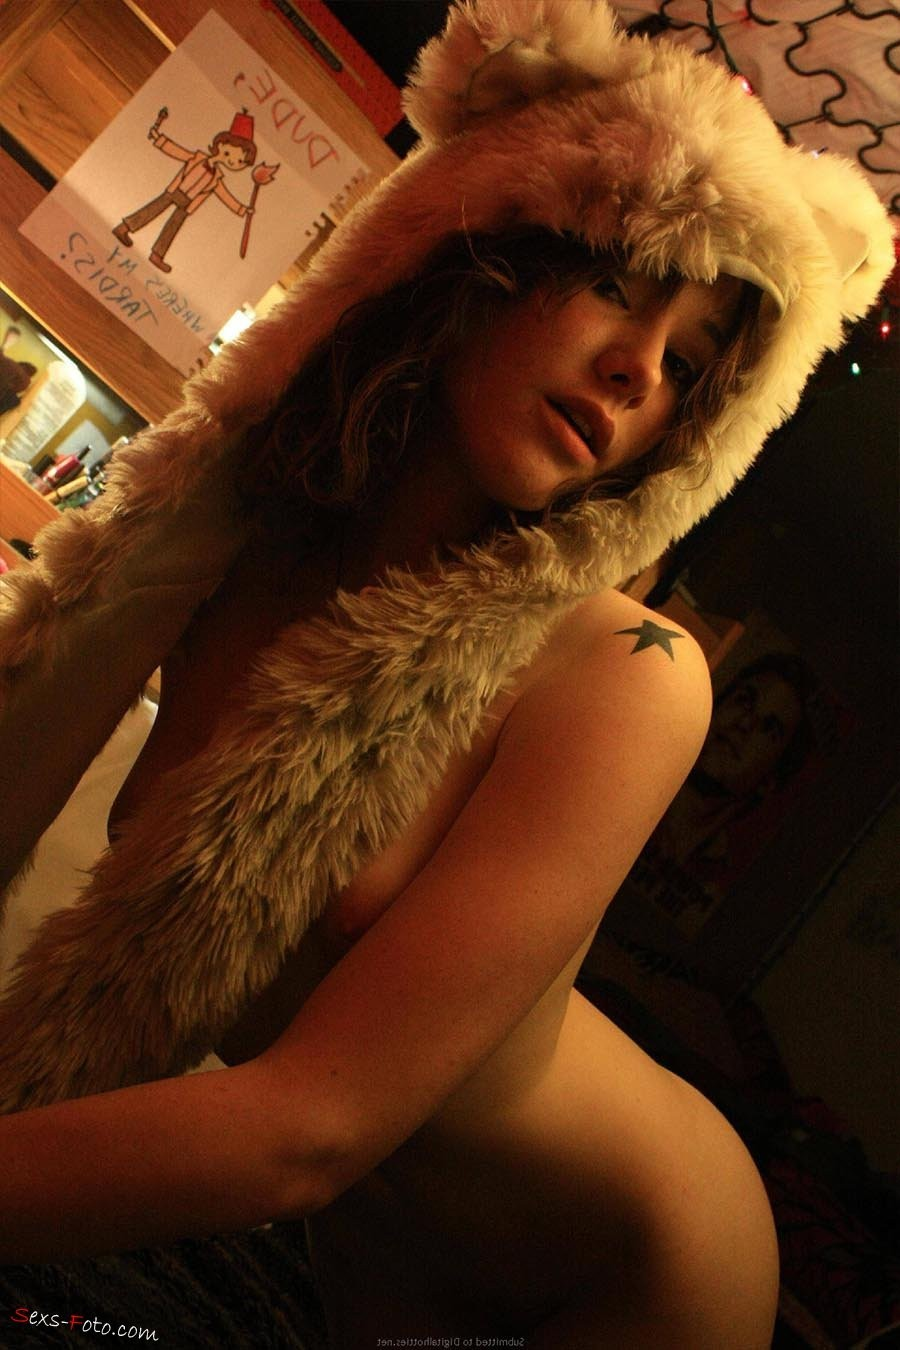 young mexican teen self pic nude – Teen